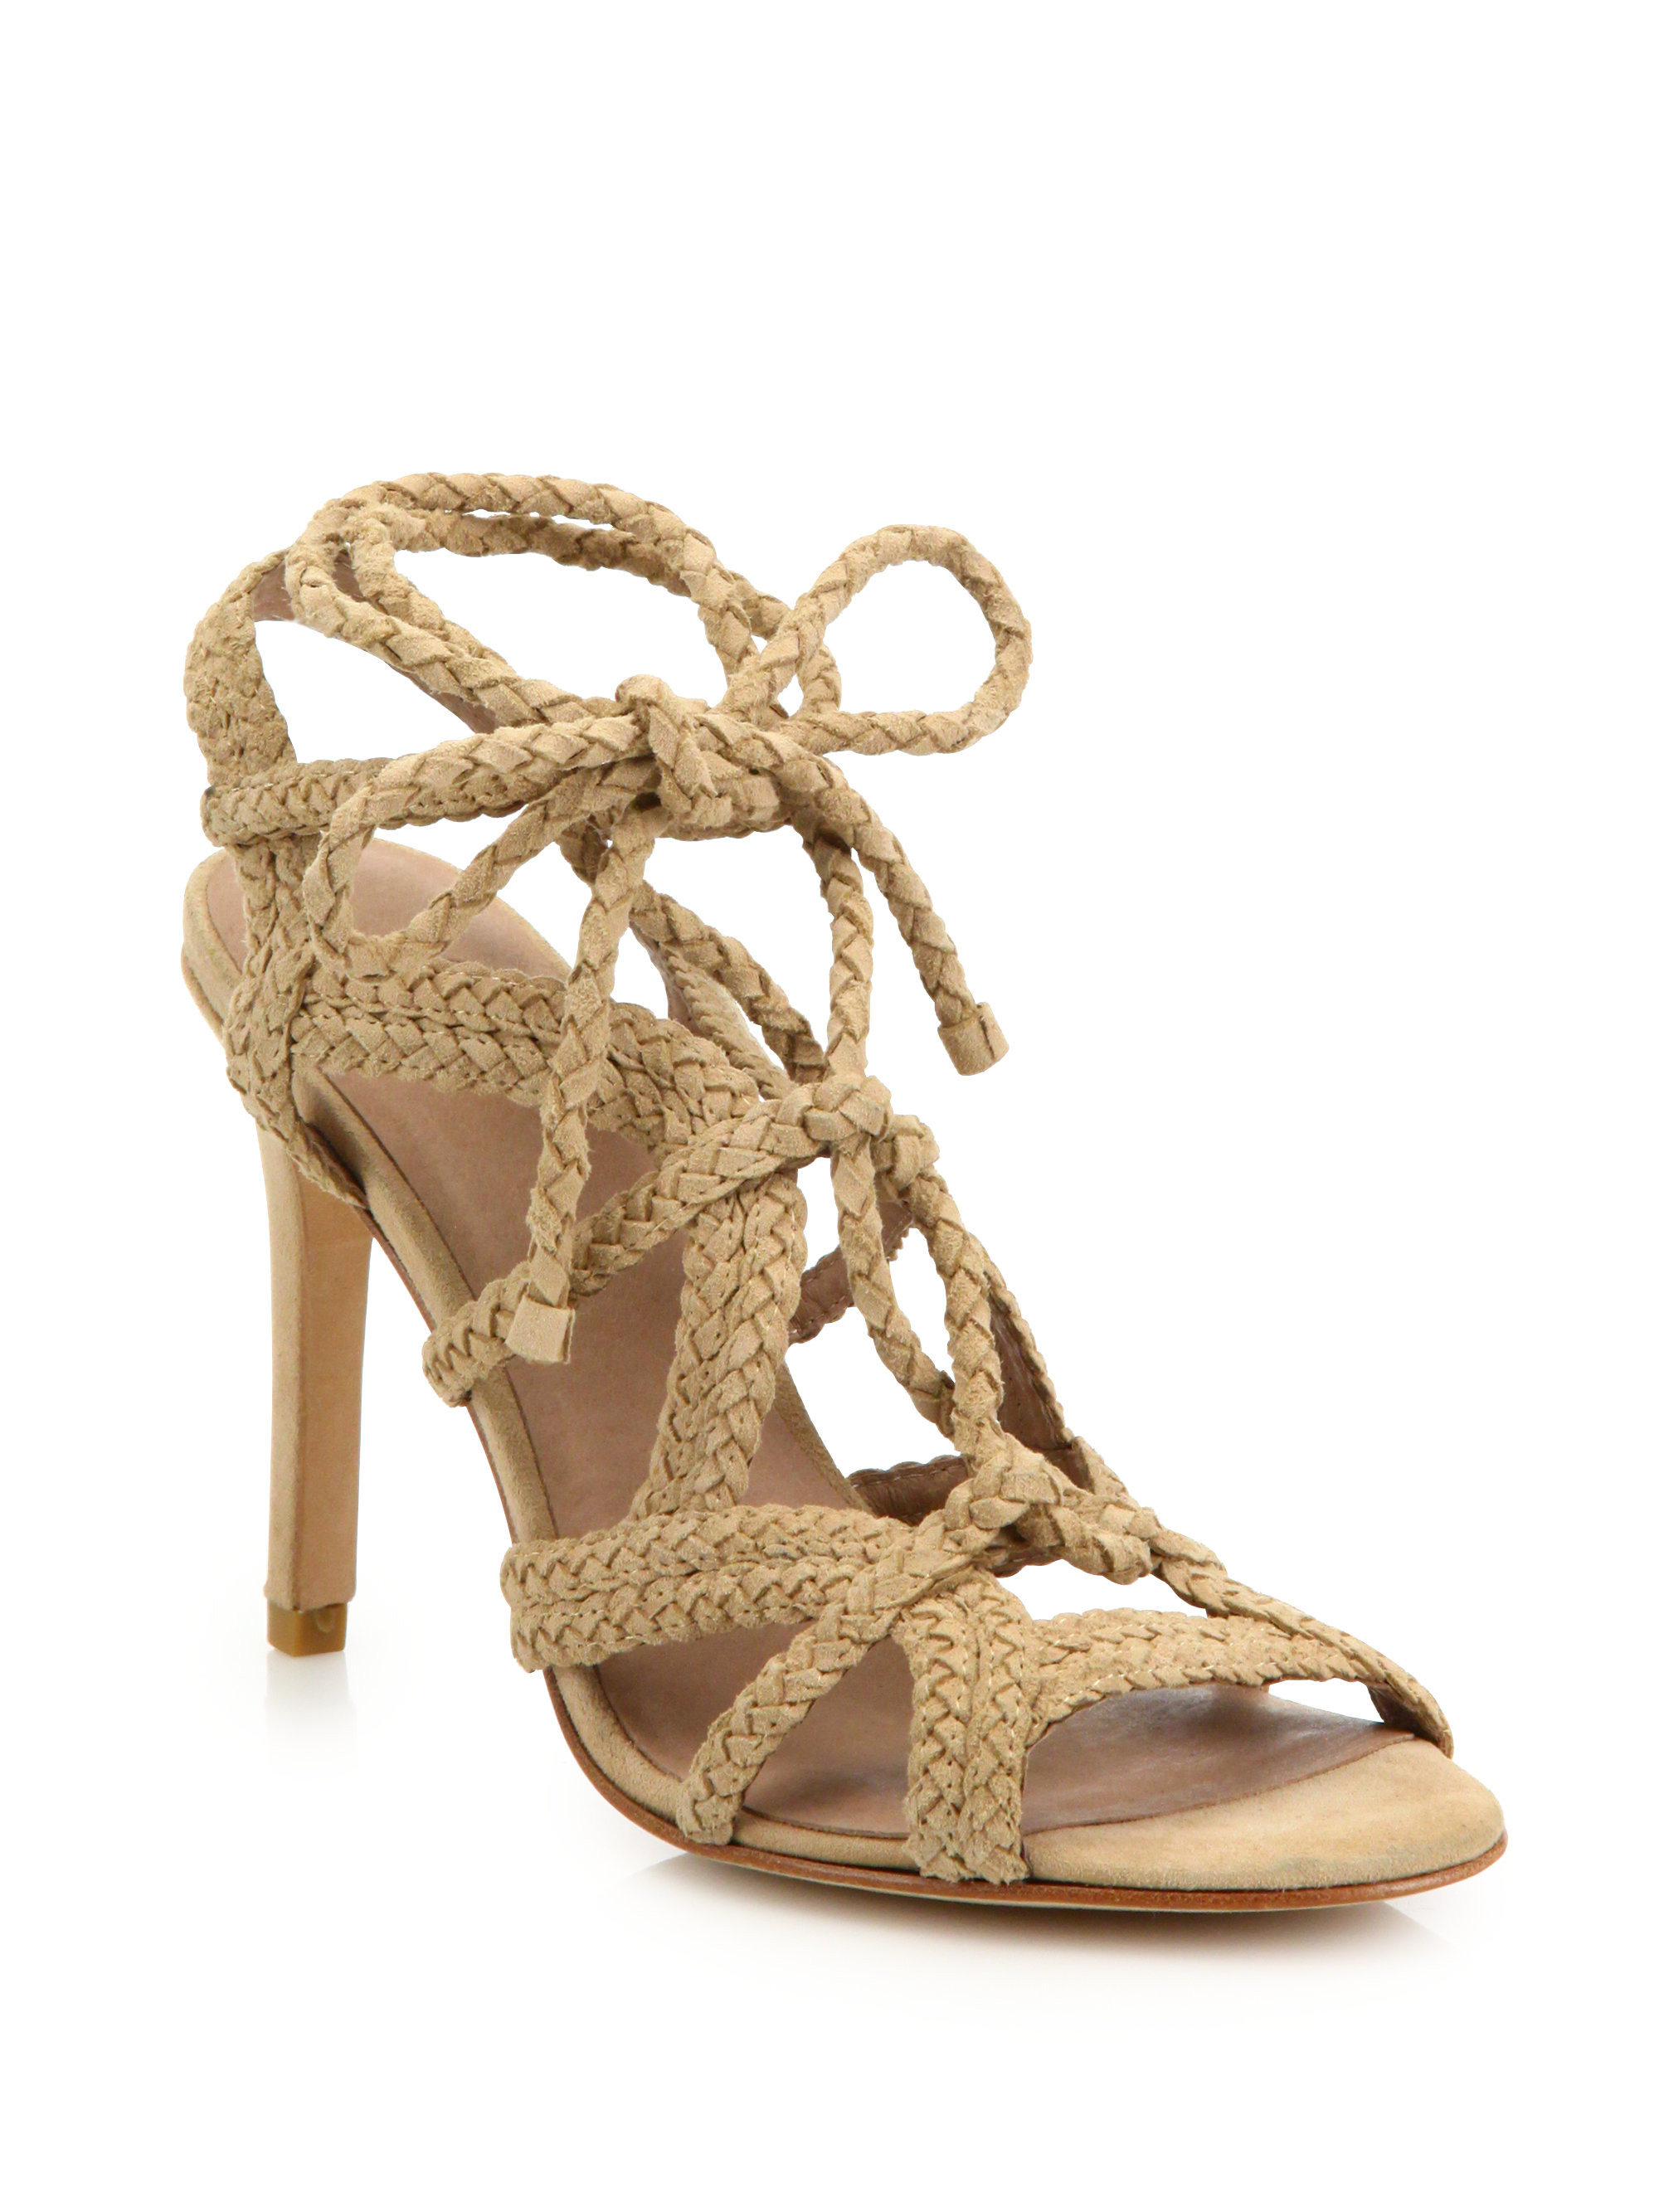 f8a5c872b73 Lyst - Joie Tonni Braided Suede Lace-up Sandals in Natural